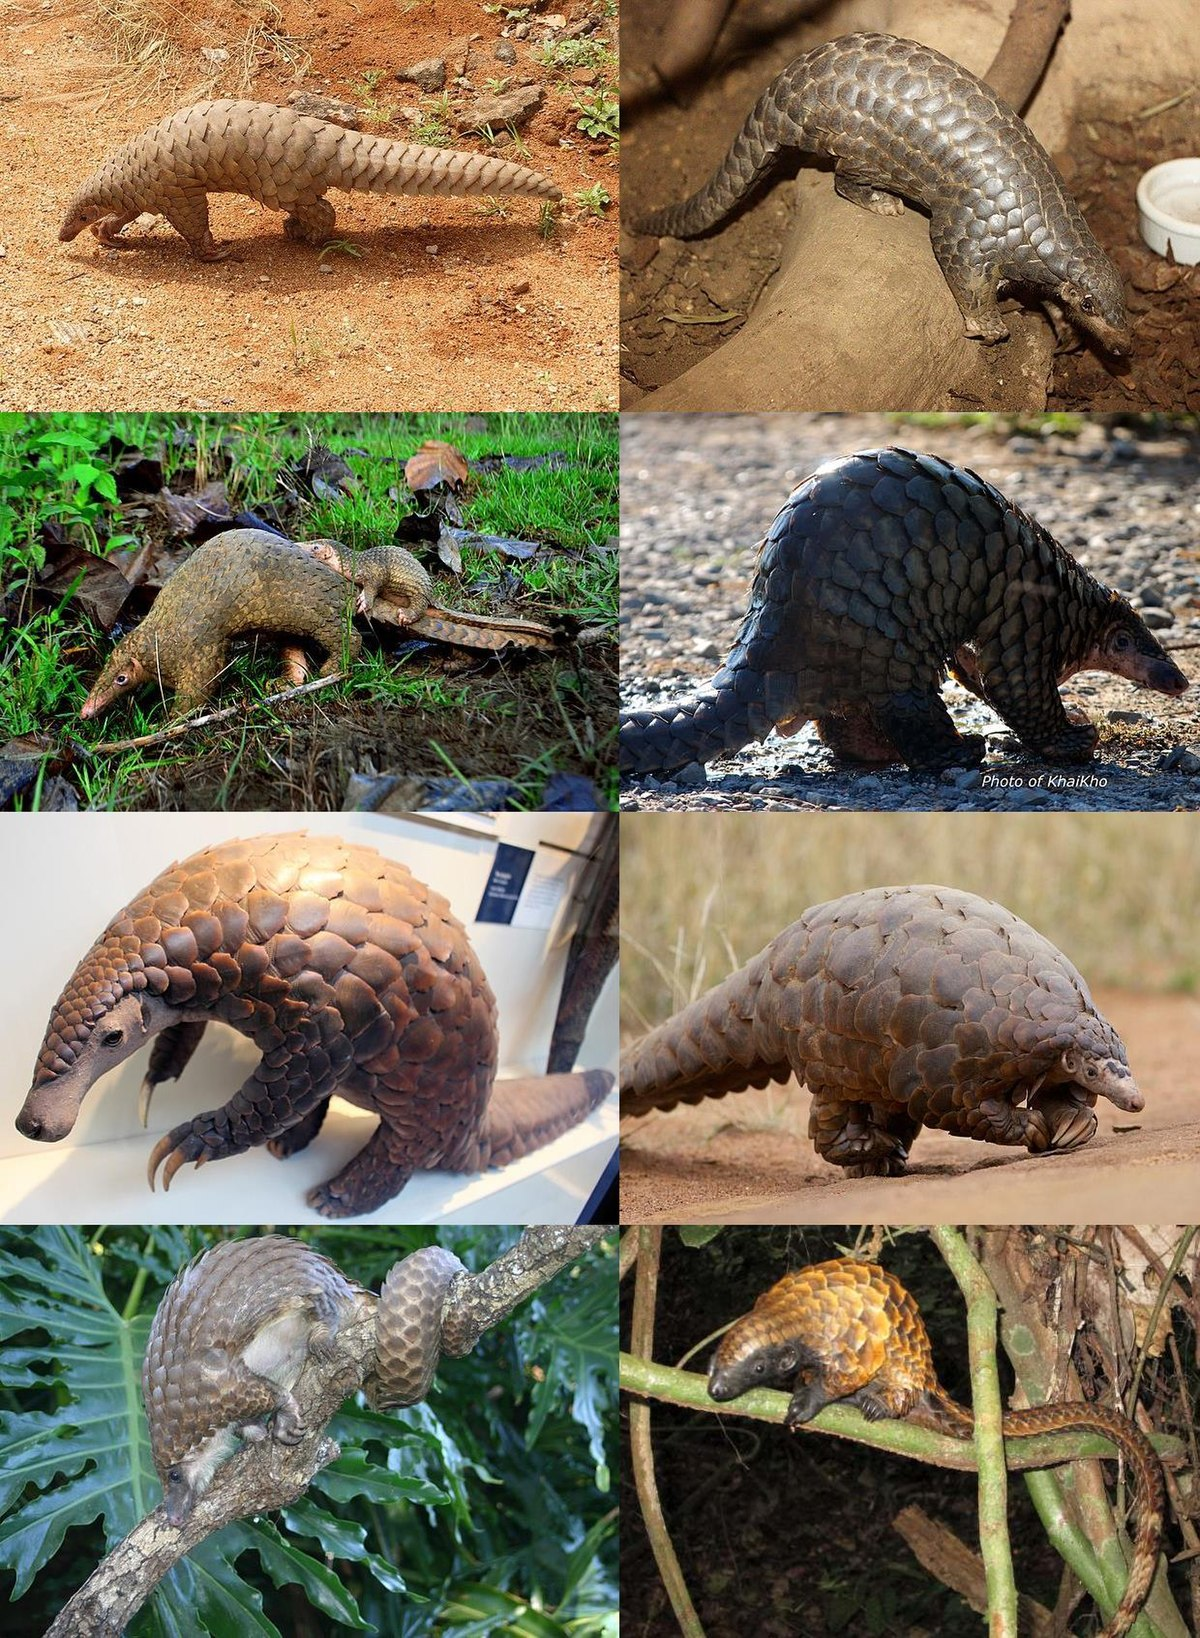 Pangolin - Wikipedia